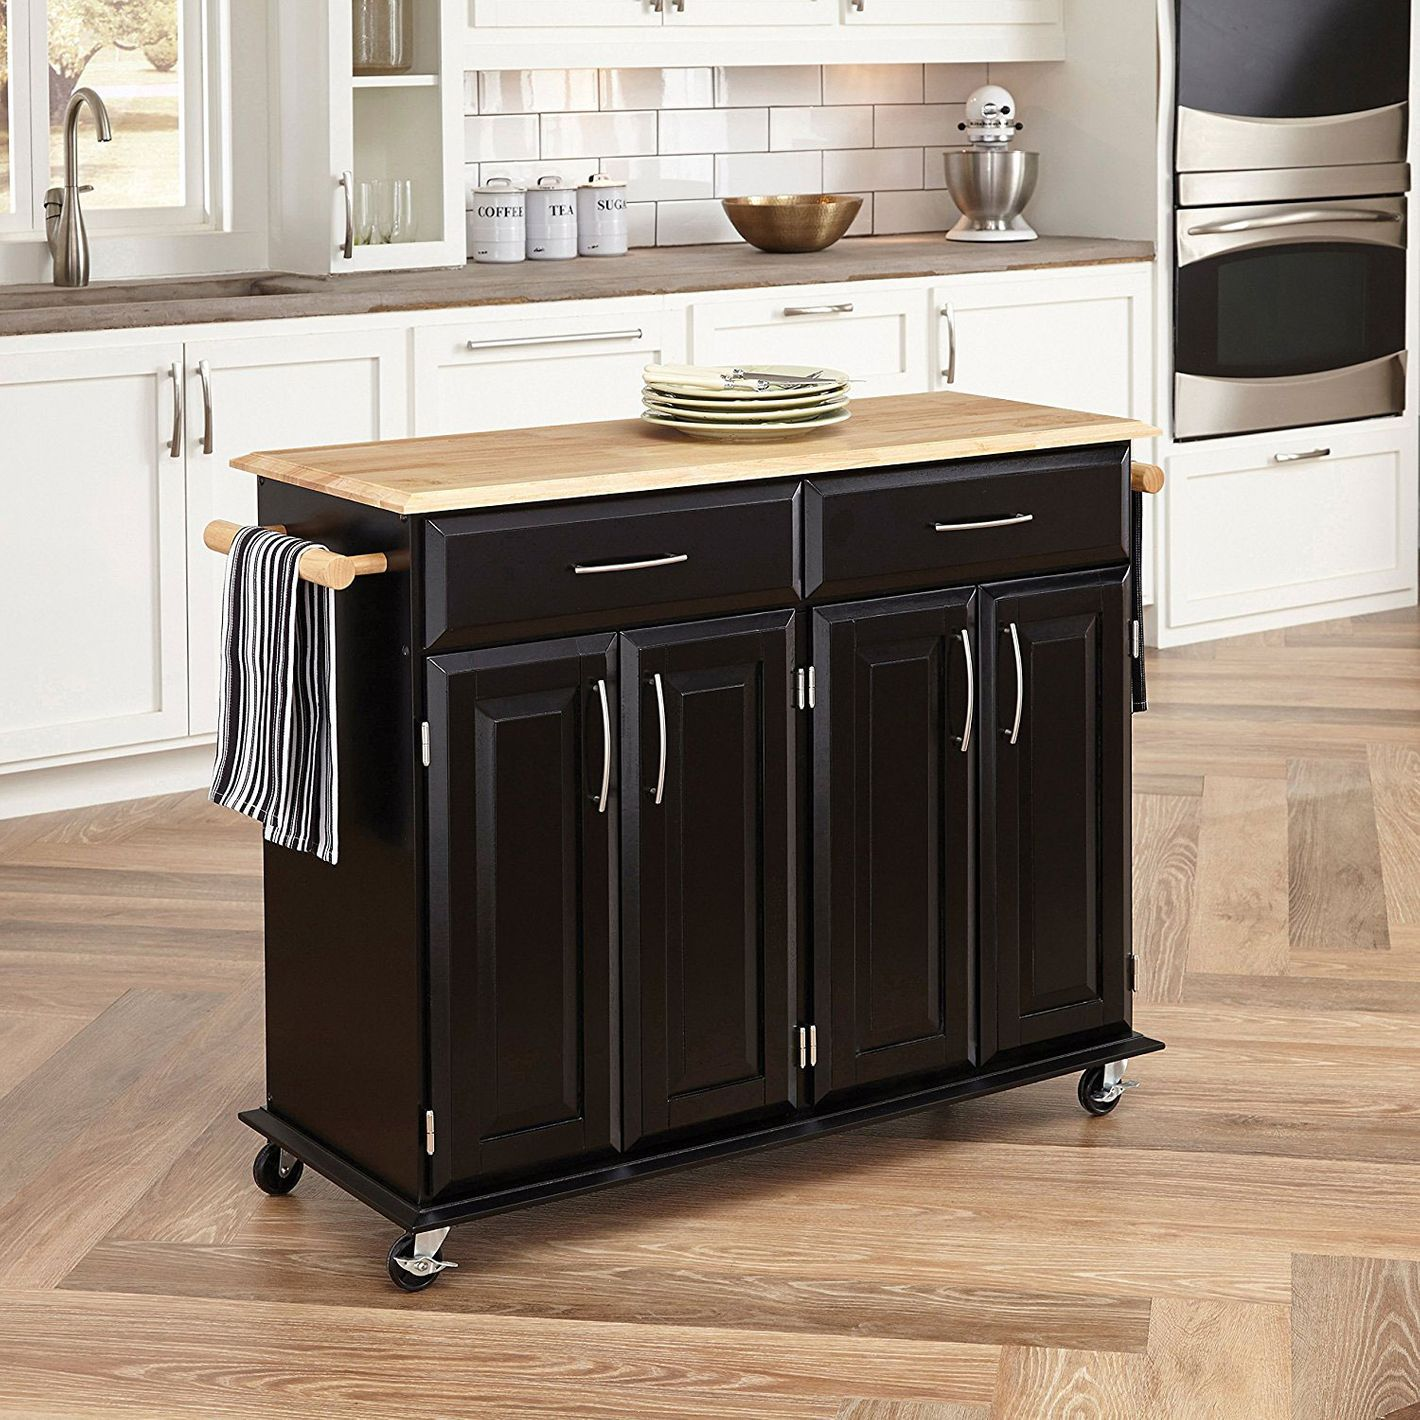 Merveilleux Home Styles 4528 95 Dolly Madison Kitchen Cart, Black Finish